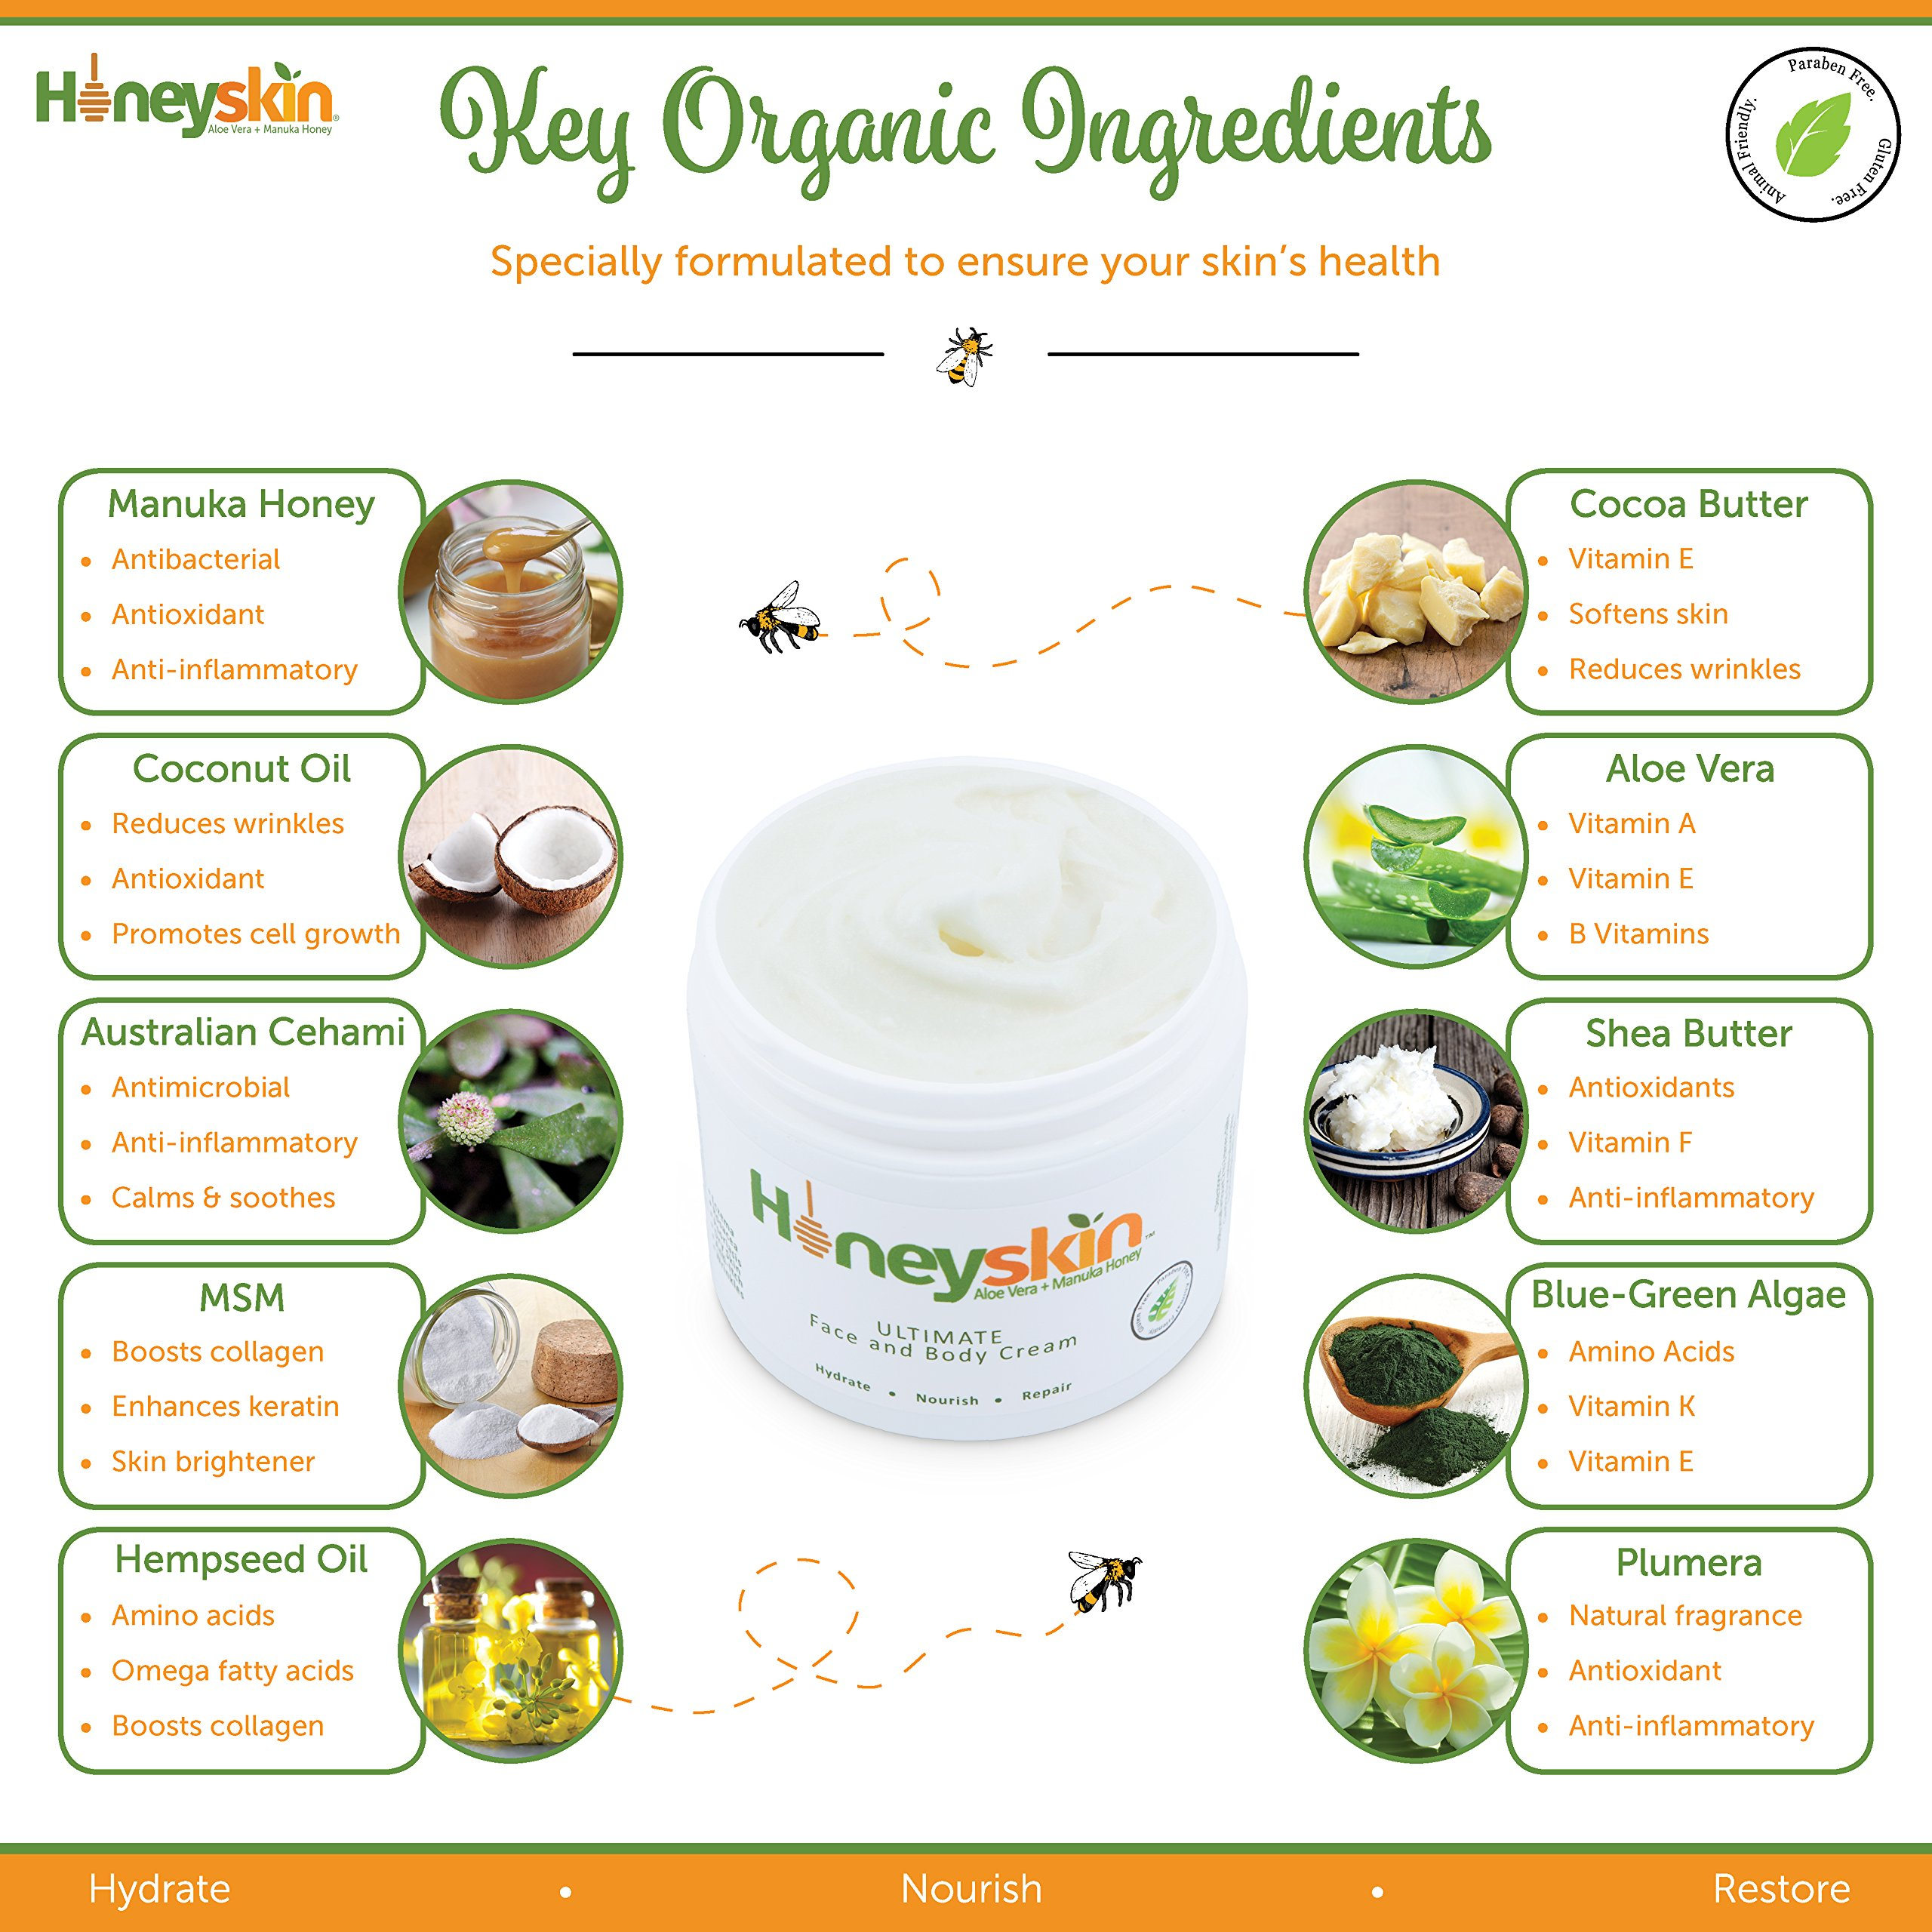 Organic Dry Skin Repair Cream (64 oz) Natural Facial Moisturizer - Rosacea, Eczema, Psoriasis, Rashes, Redness, Raw Superfoods, Manuka Honey, Aloe Vera, Shea Butter by Honeyskin Organics by Honeyskin Organics (Image #3)